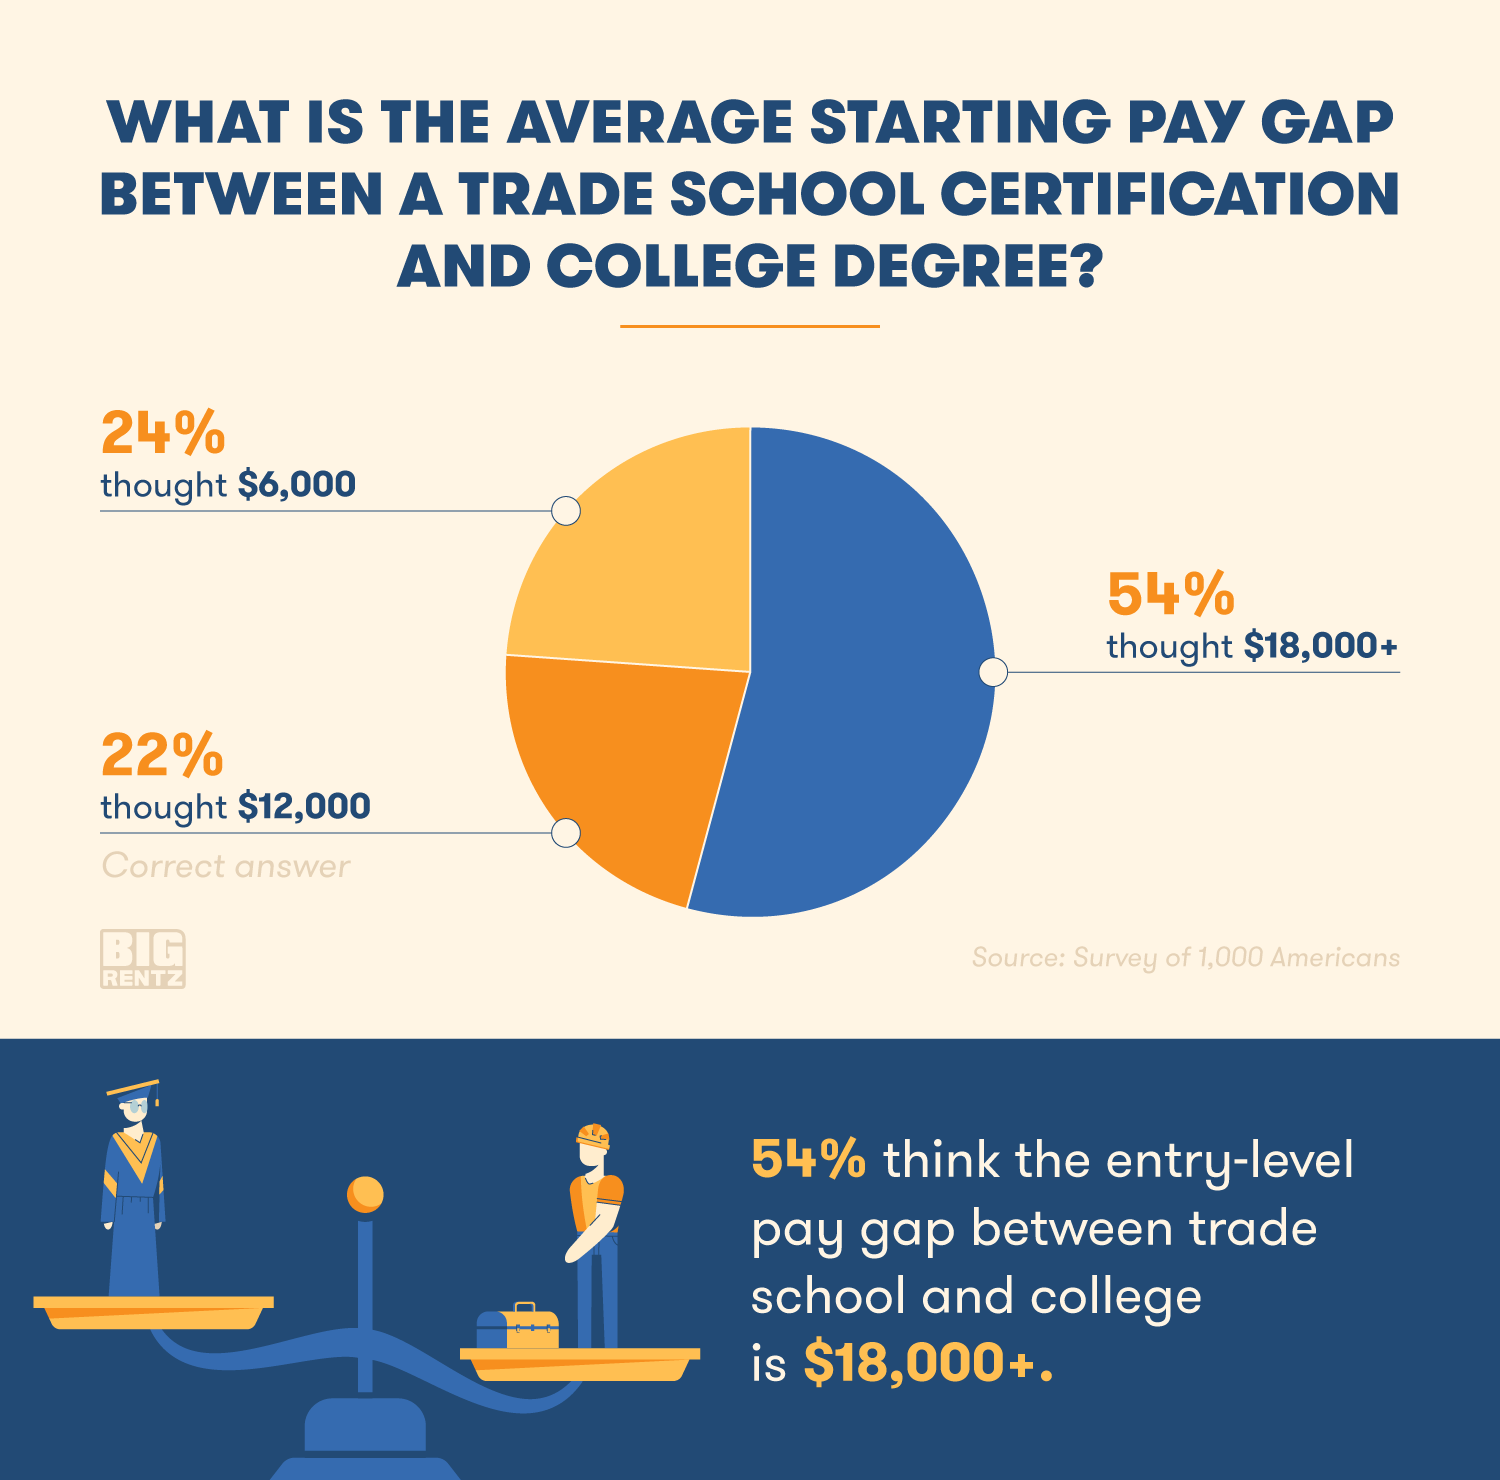 54% of Americans think the entry-level pay gap between trade school and college is over $18,000.